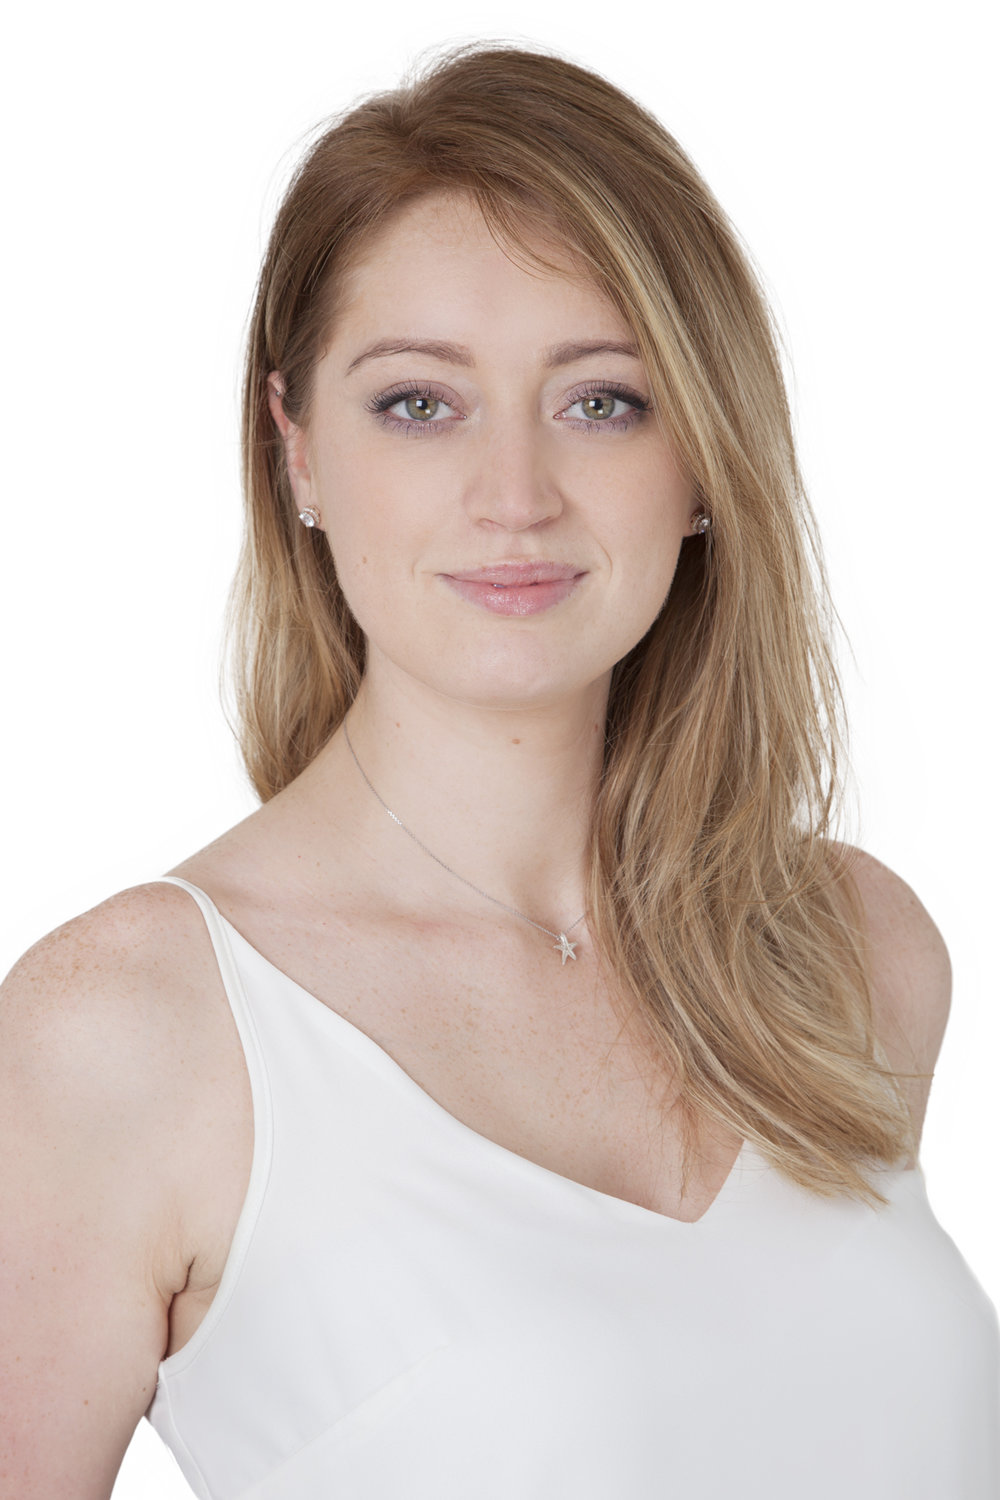 Headshot of woman on white background smiles to camera